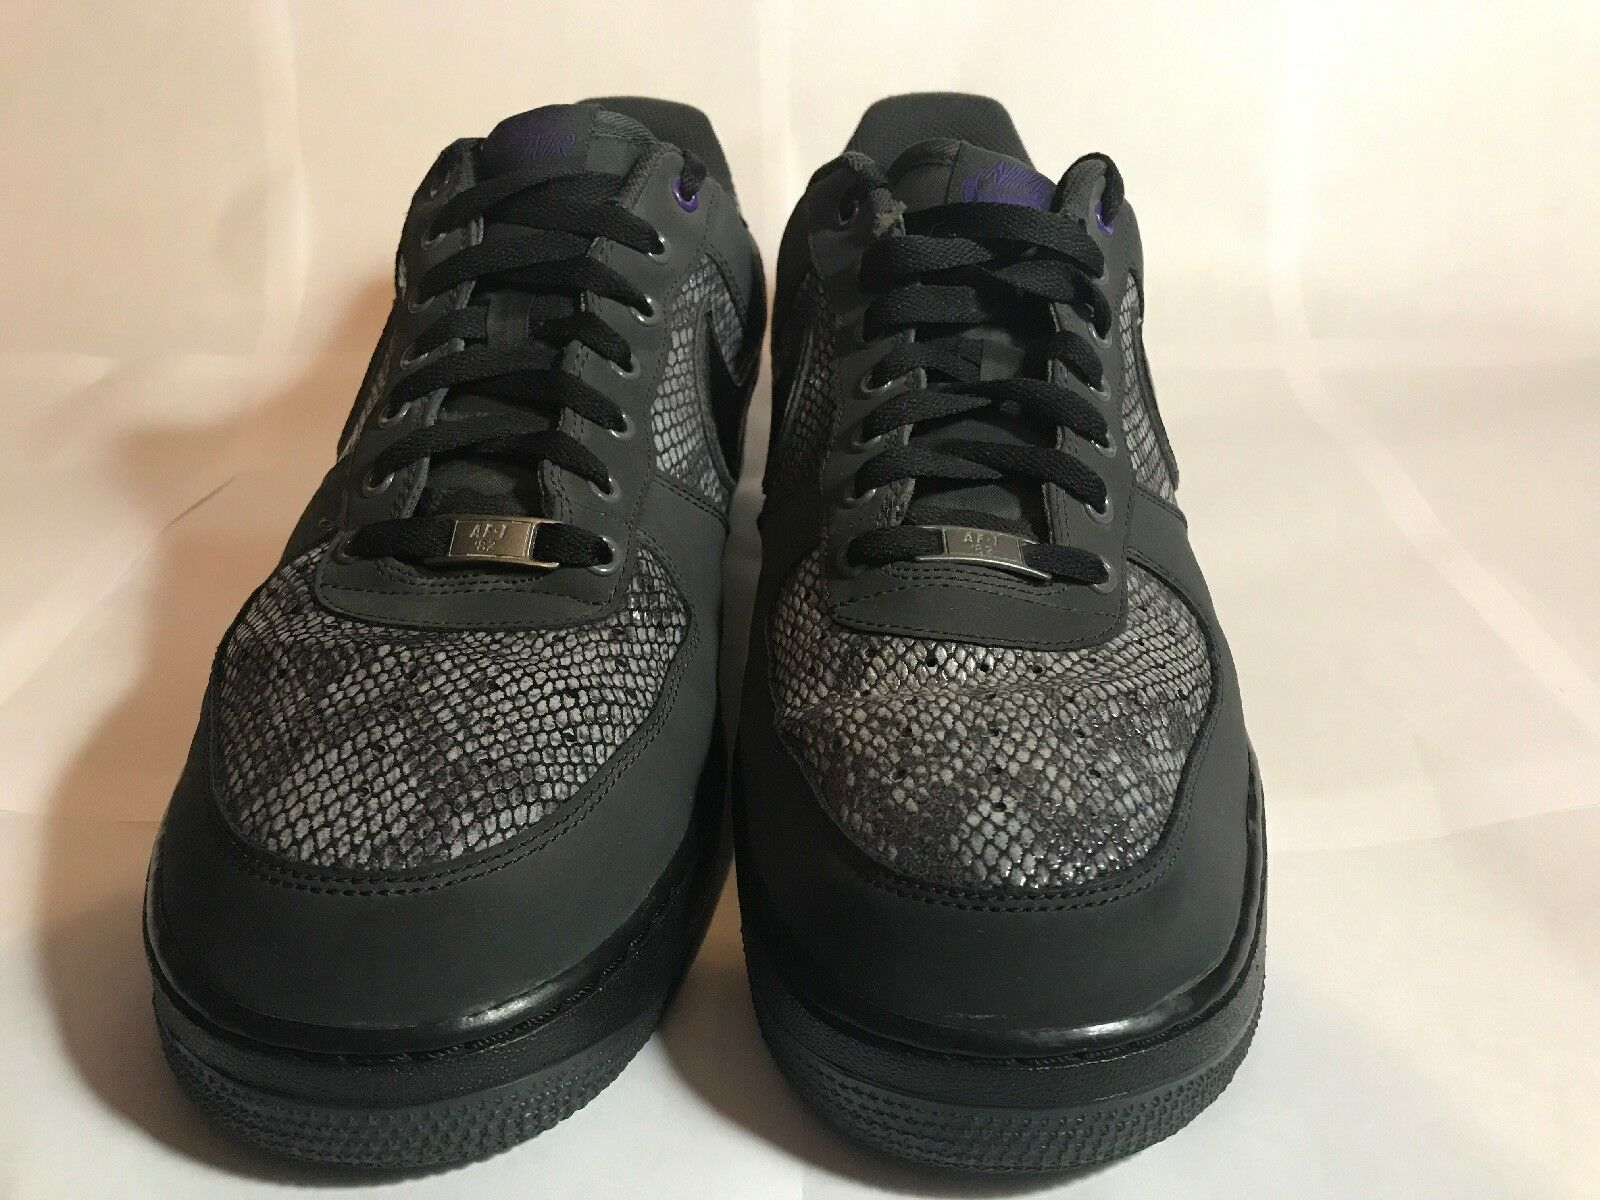 competitive price 56861 80c3f Nike Air Force 1 UltraForce Mid Women s shoes Size 8 Desert Dust 864025 203,.  Rare Black And Grey Snakeskin Air Force Ones Ones Ones Size 13 (2012) 5d6866